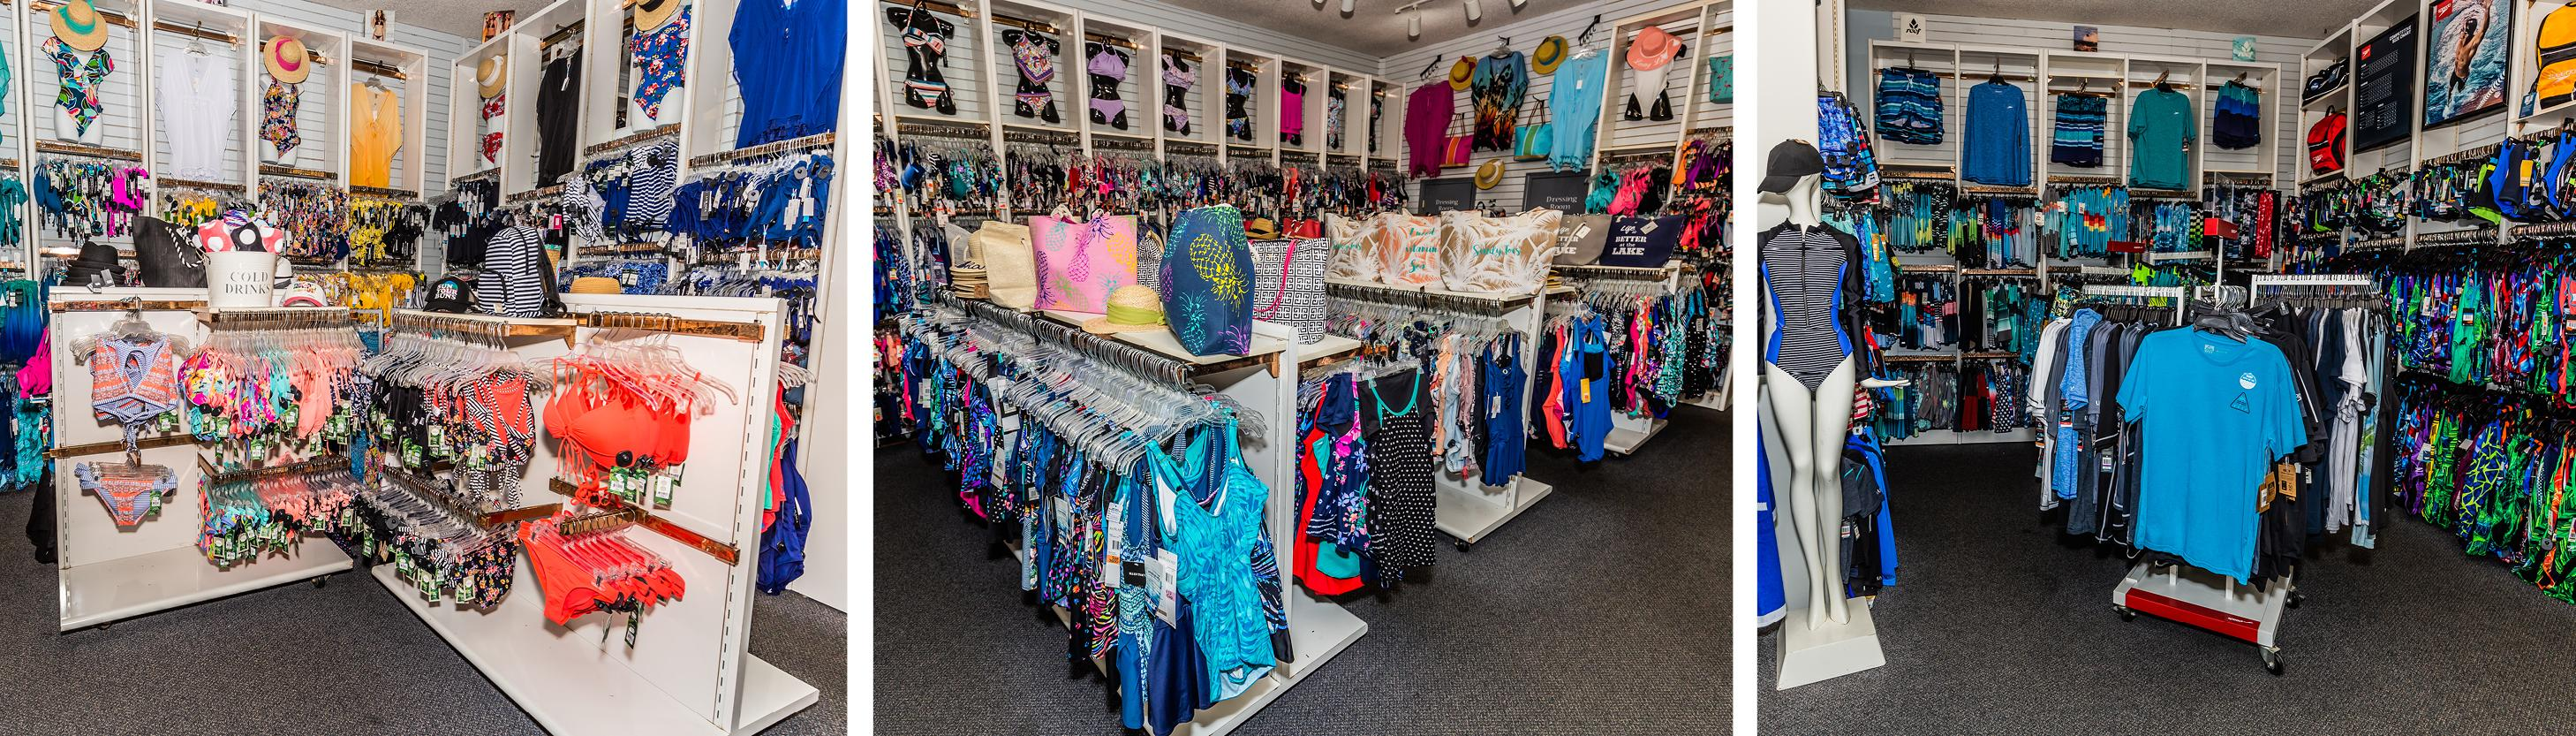 Our wide selection of swimsuits in our store